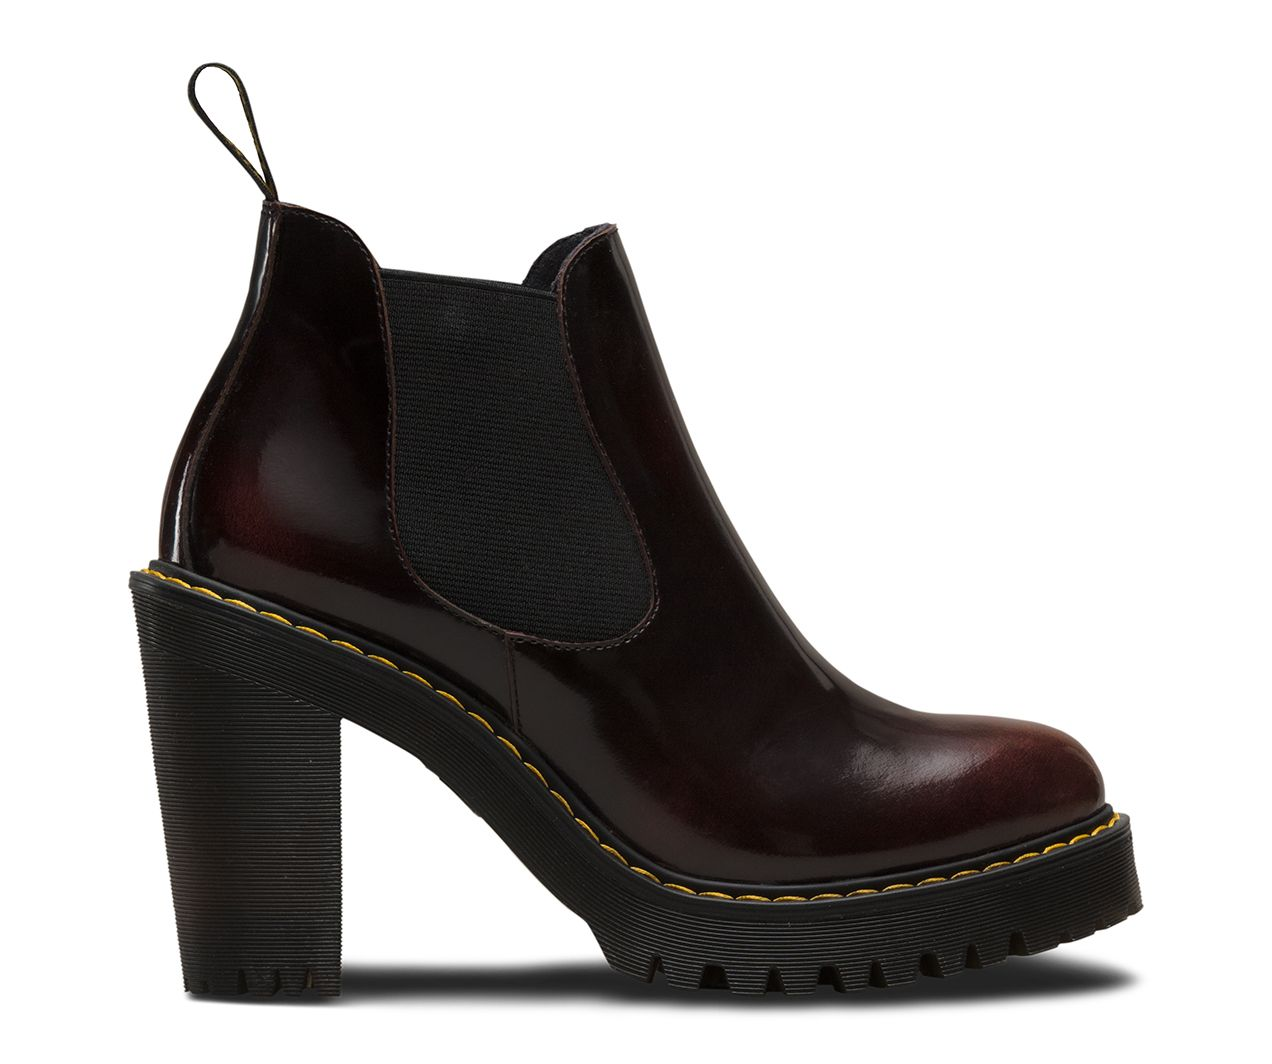 aa4fea200b The Hurston is a pull-on Chelsea Boot style serving up an empowering 3.5  heel